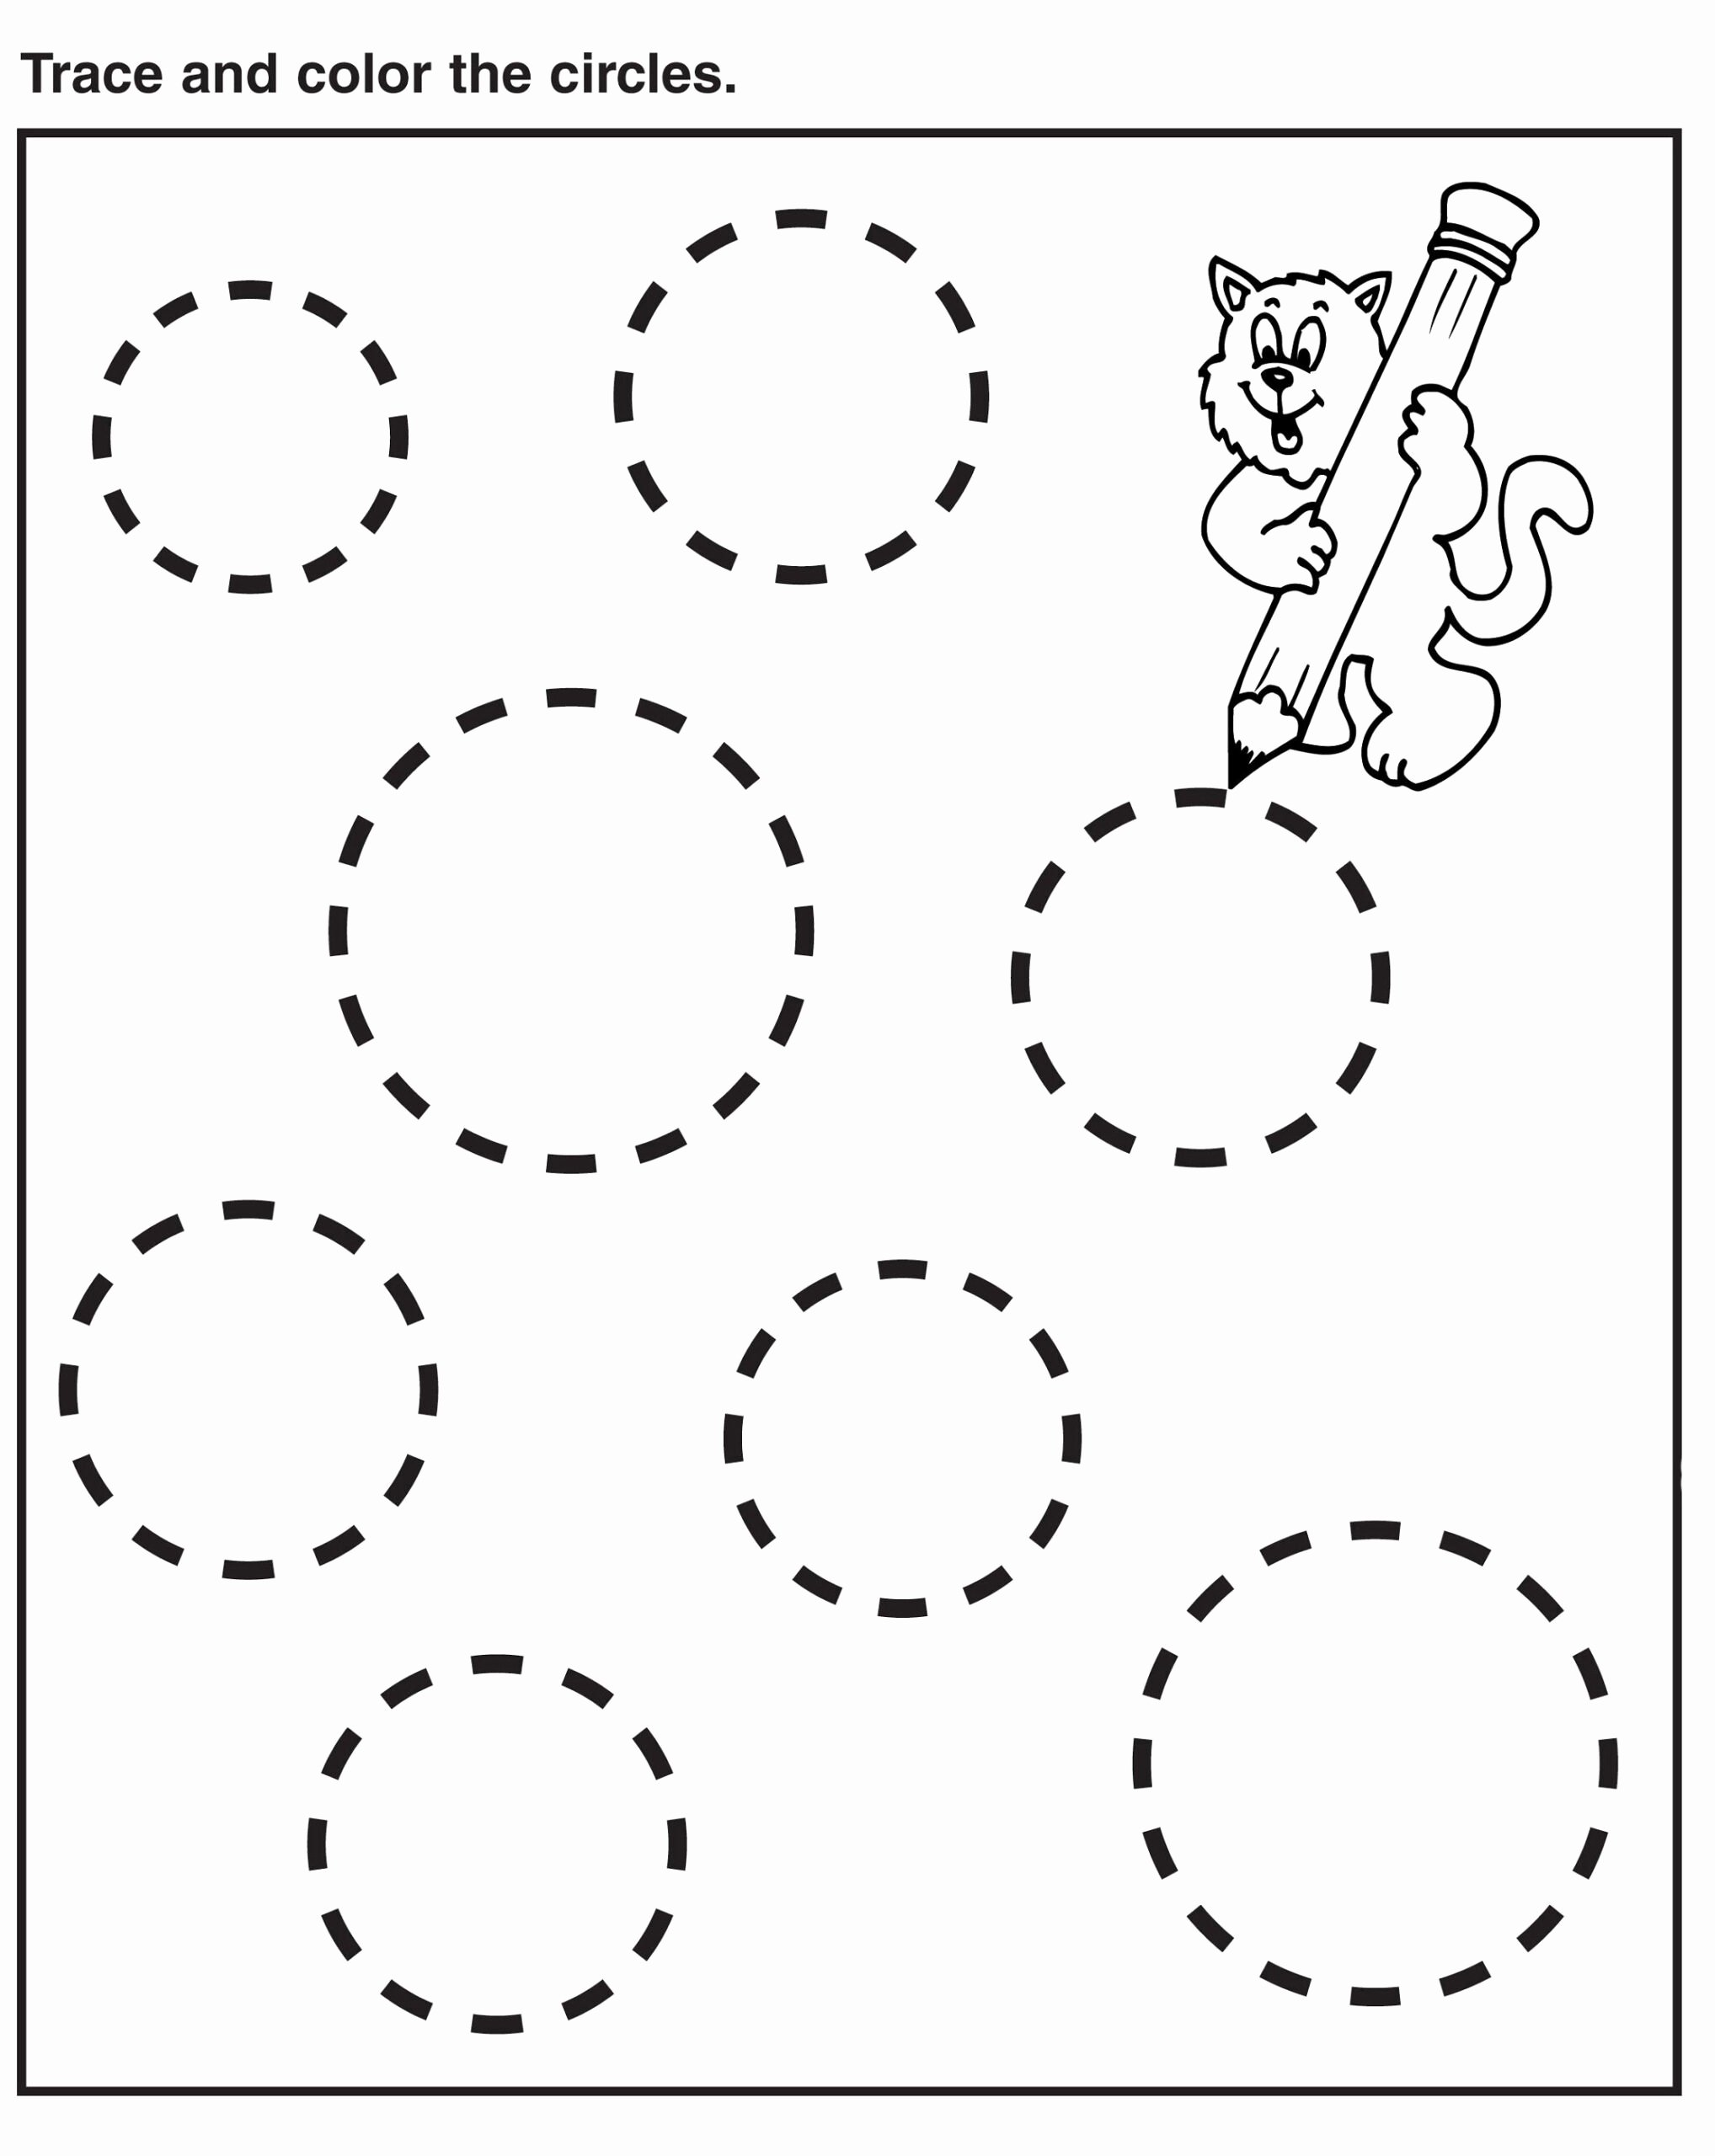 Printable Tracing Worksheets for Preschoolers Best Of Worksheets Preschool Tracing Worksheets Best Coloring for